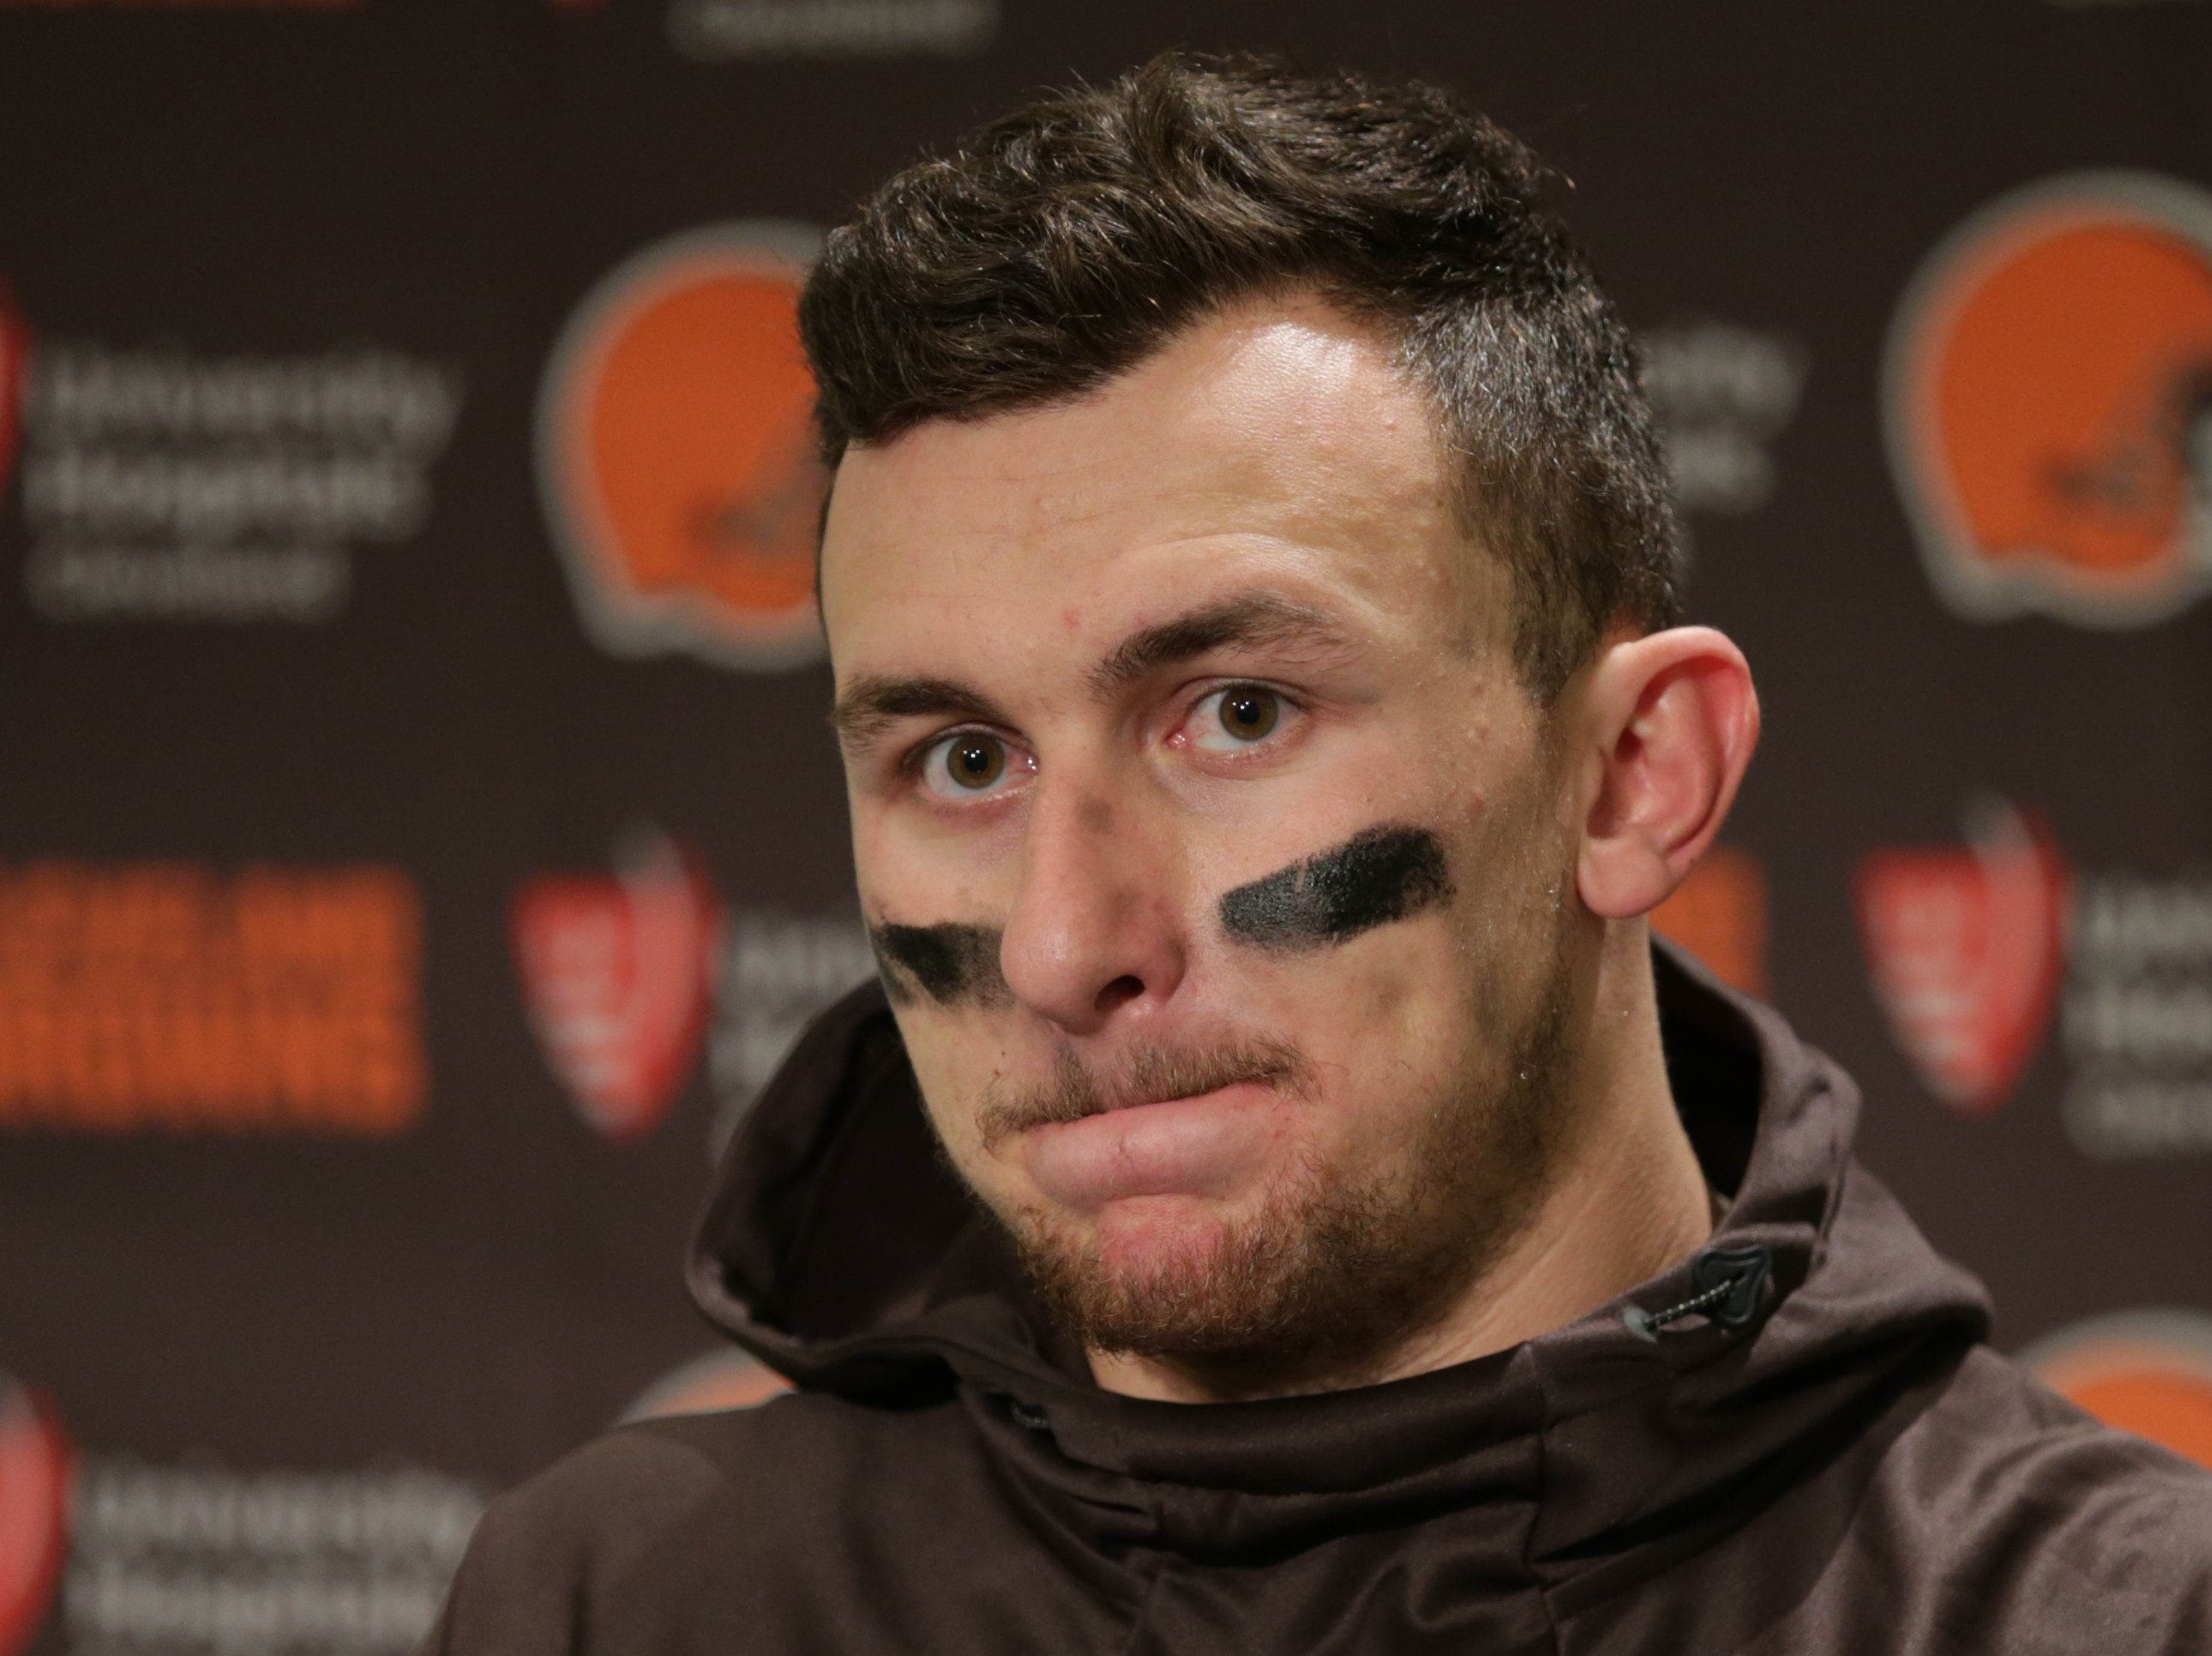 Manziel has a lot of work to do if he wants to play on an NFL field again.